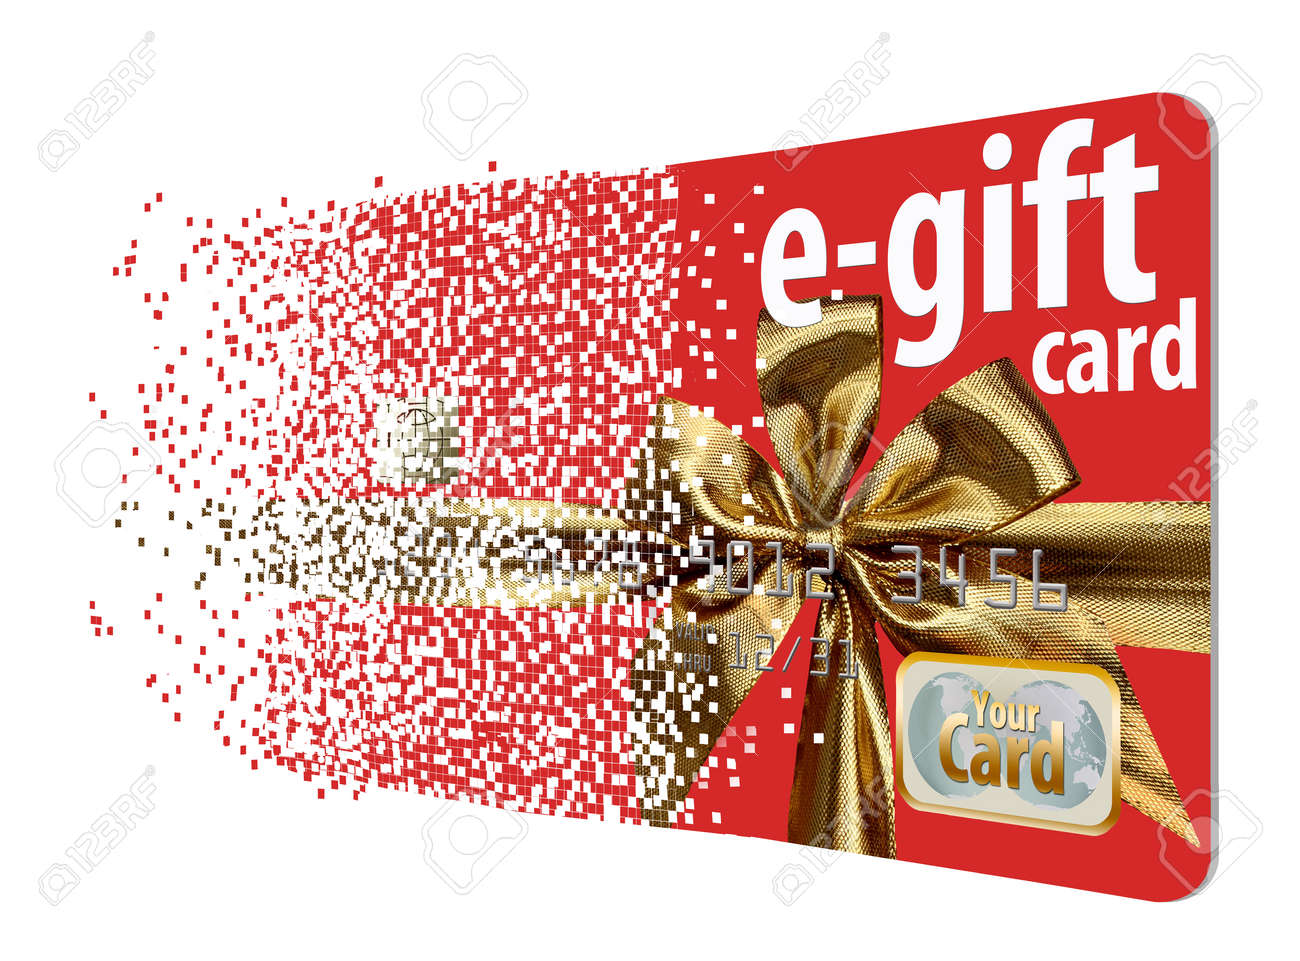 A virtual gift card assimilates from a field of pixels to illustrate the virtual aspect of